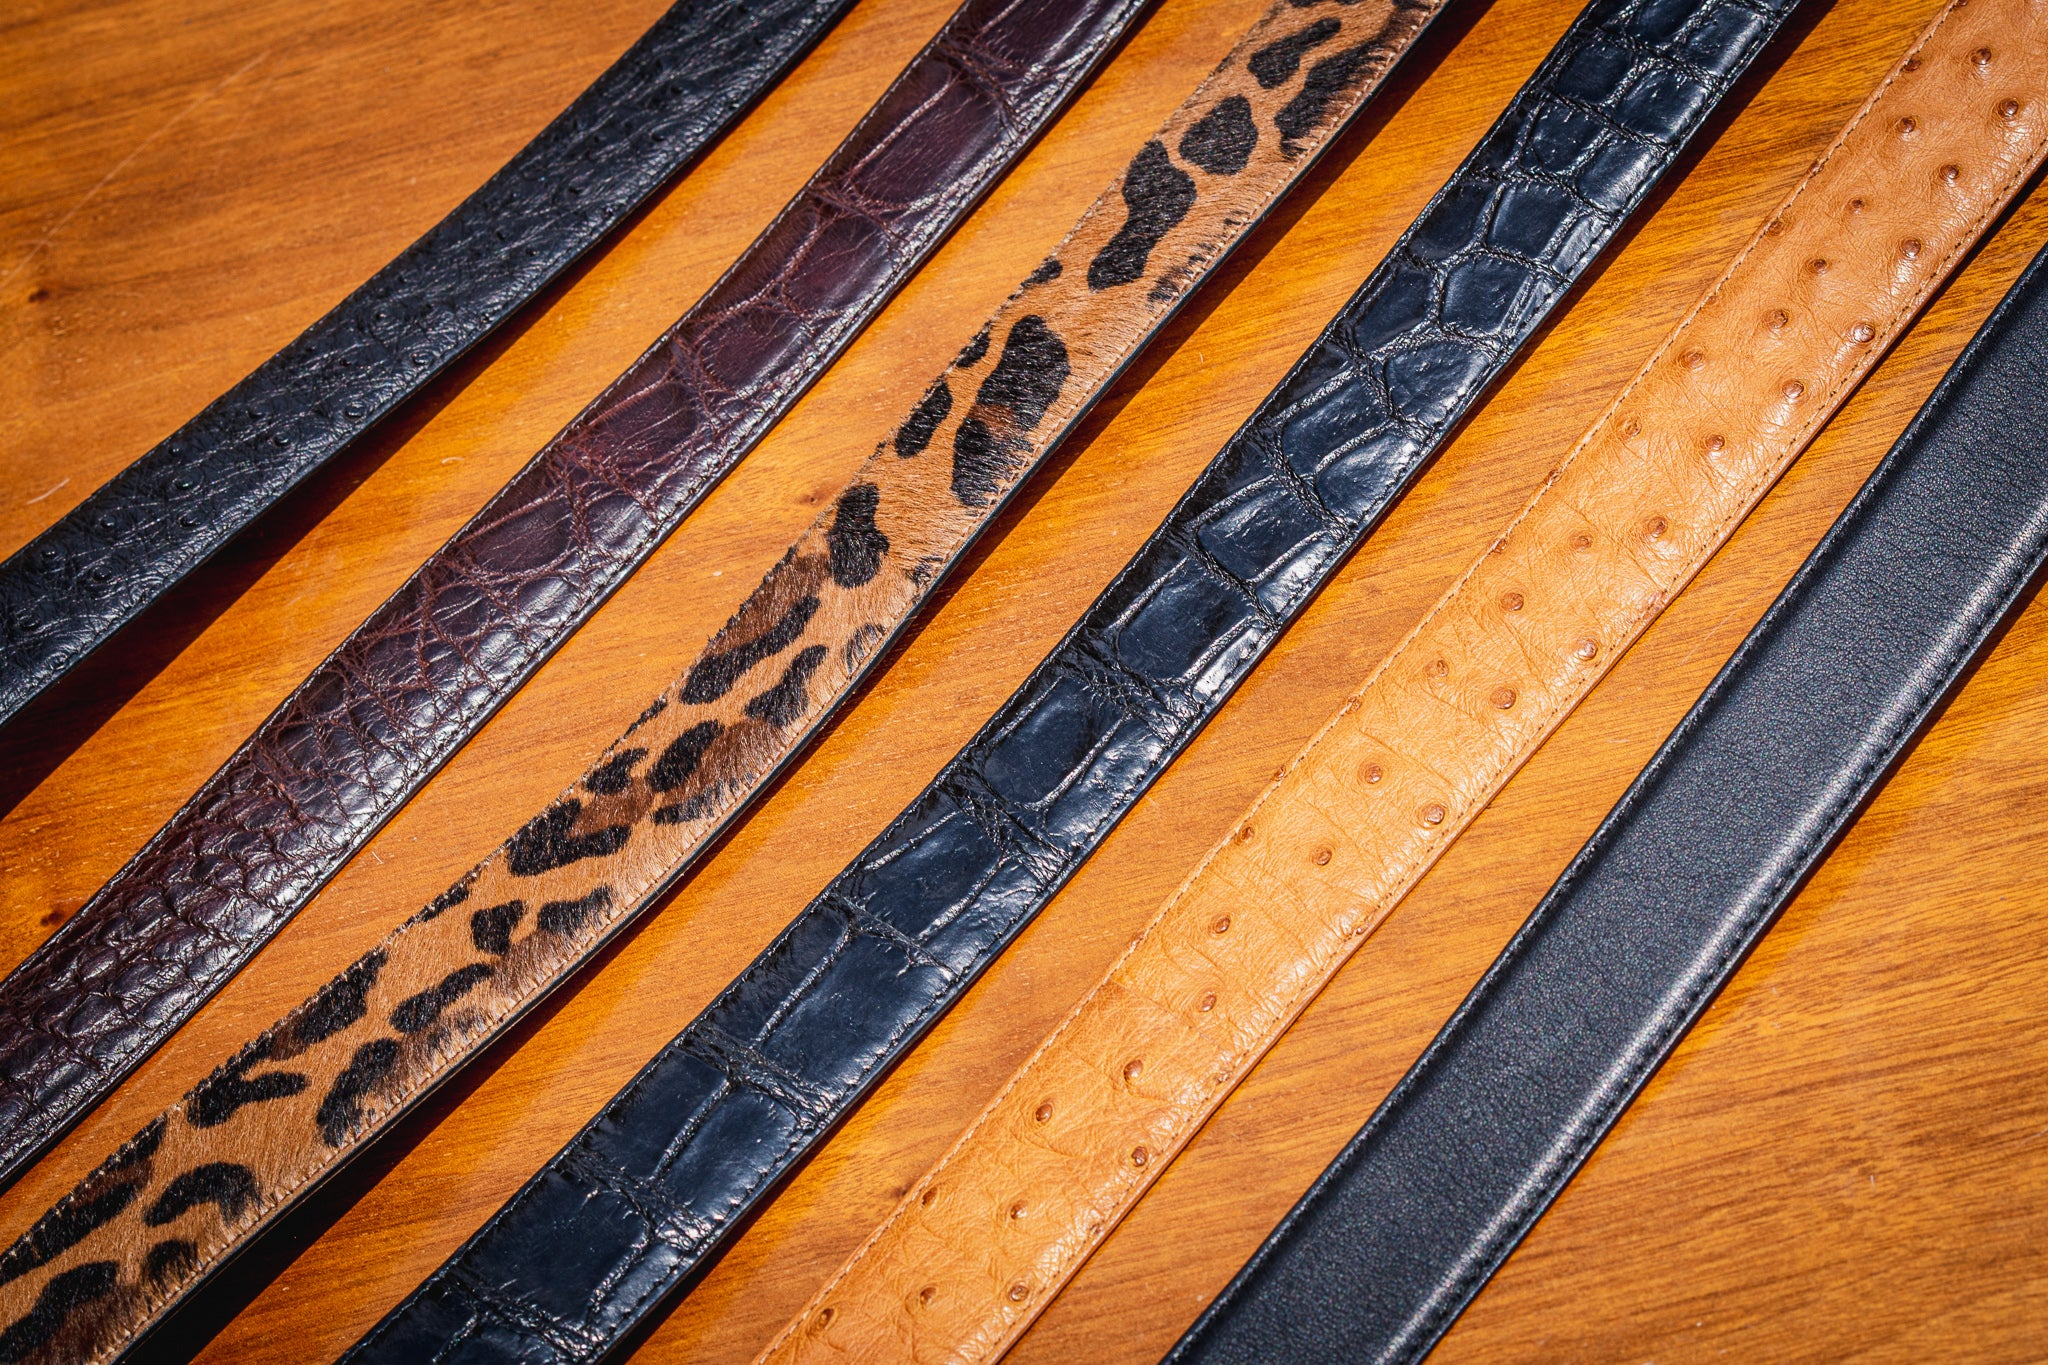 The Glades Exotic Belt - Python, Cobra, Alligator, Ostrich